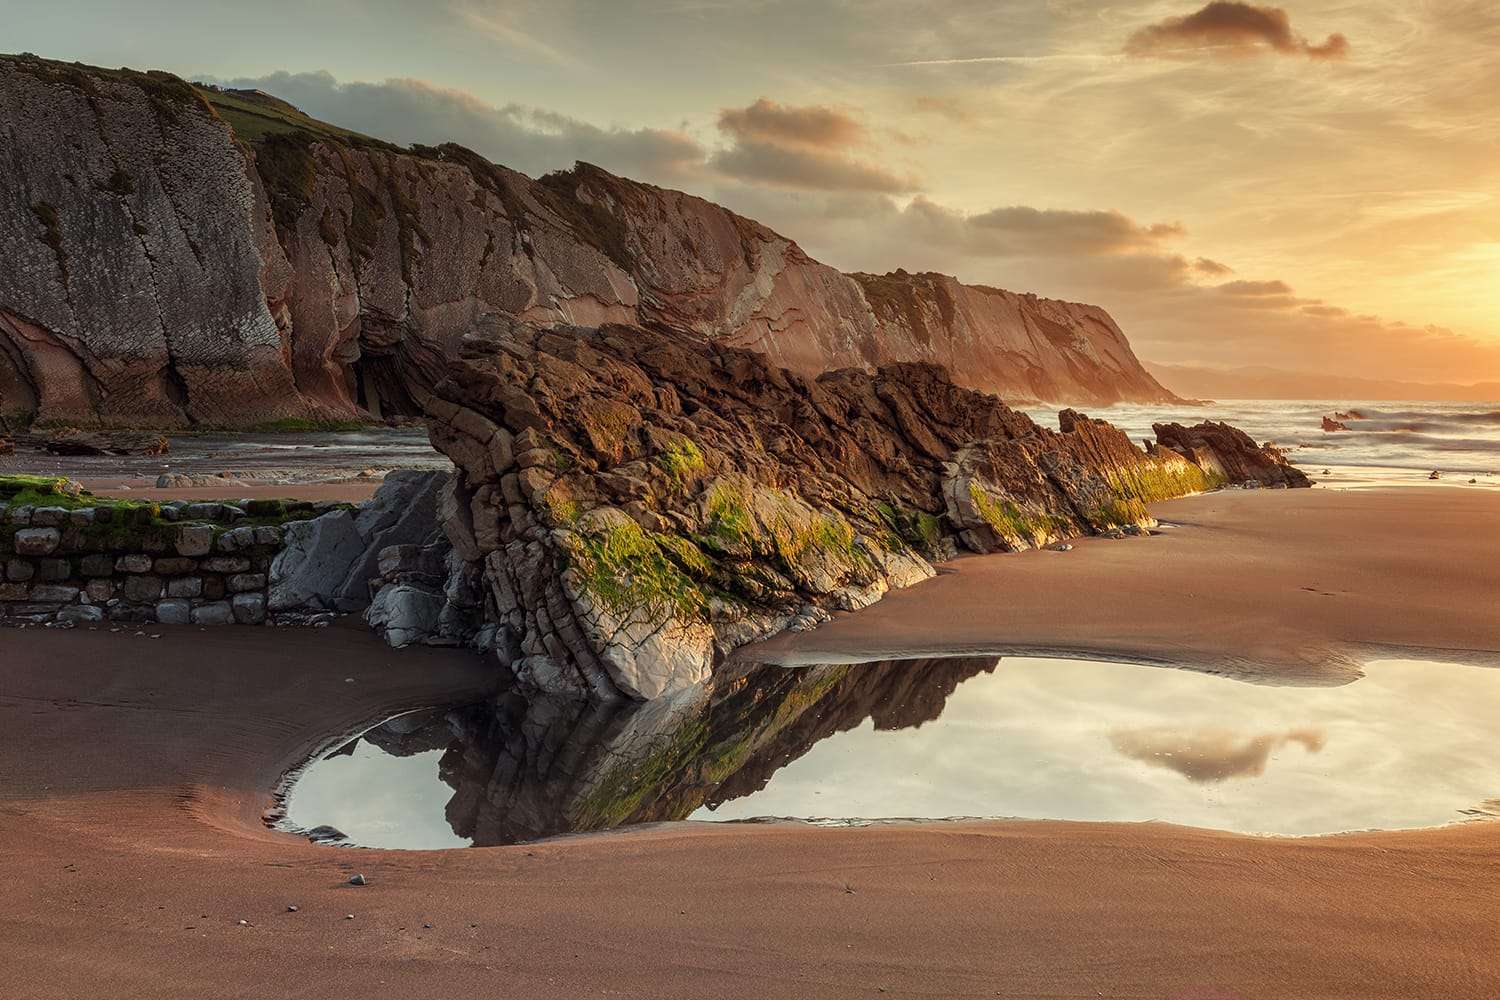 Itzurun beach, flysch of Zumaia on the coast of Gipuzkoa, Spain